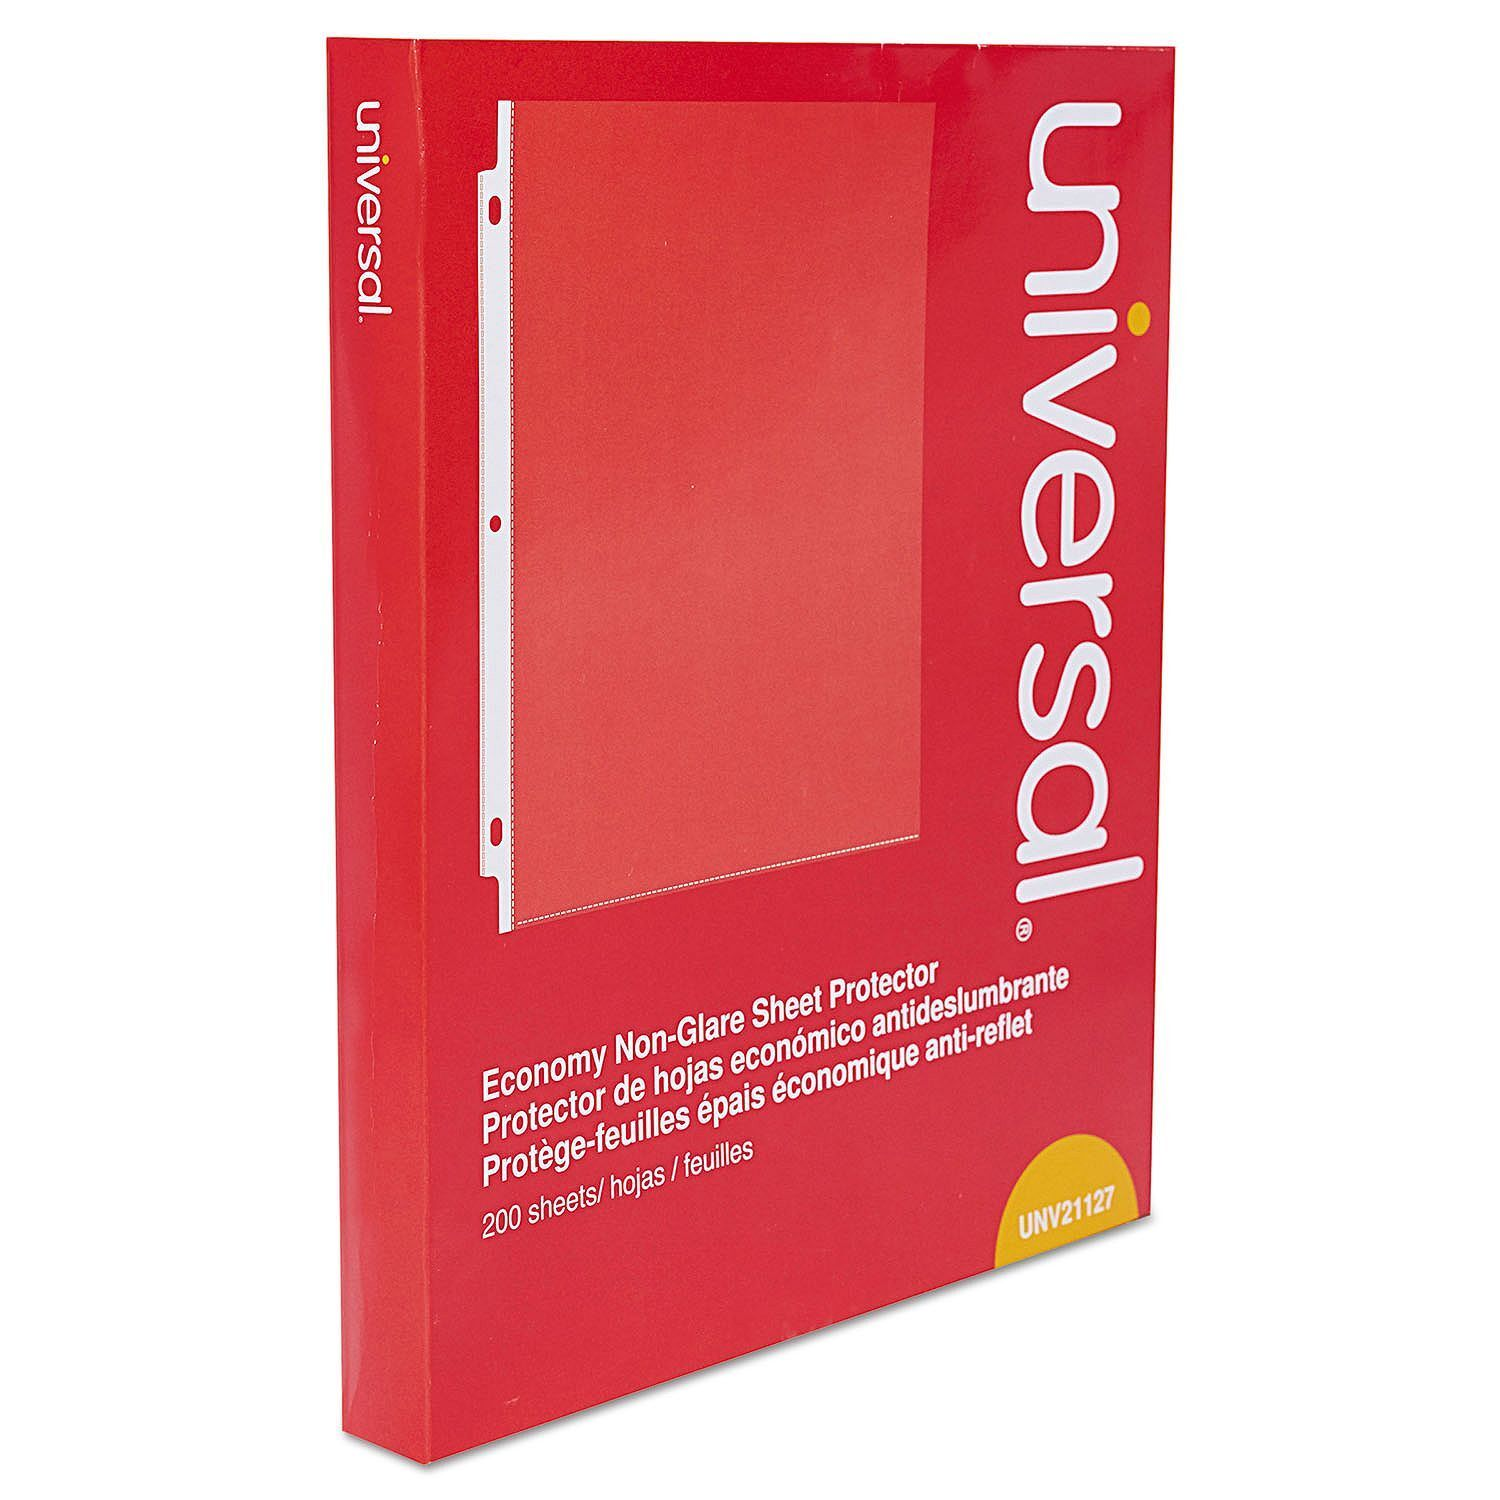 Universal Top-Load Poly Sheet Protectors, Nonglare, Economy, Letter, 200/Box